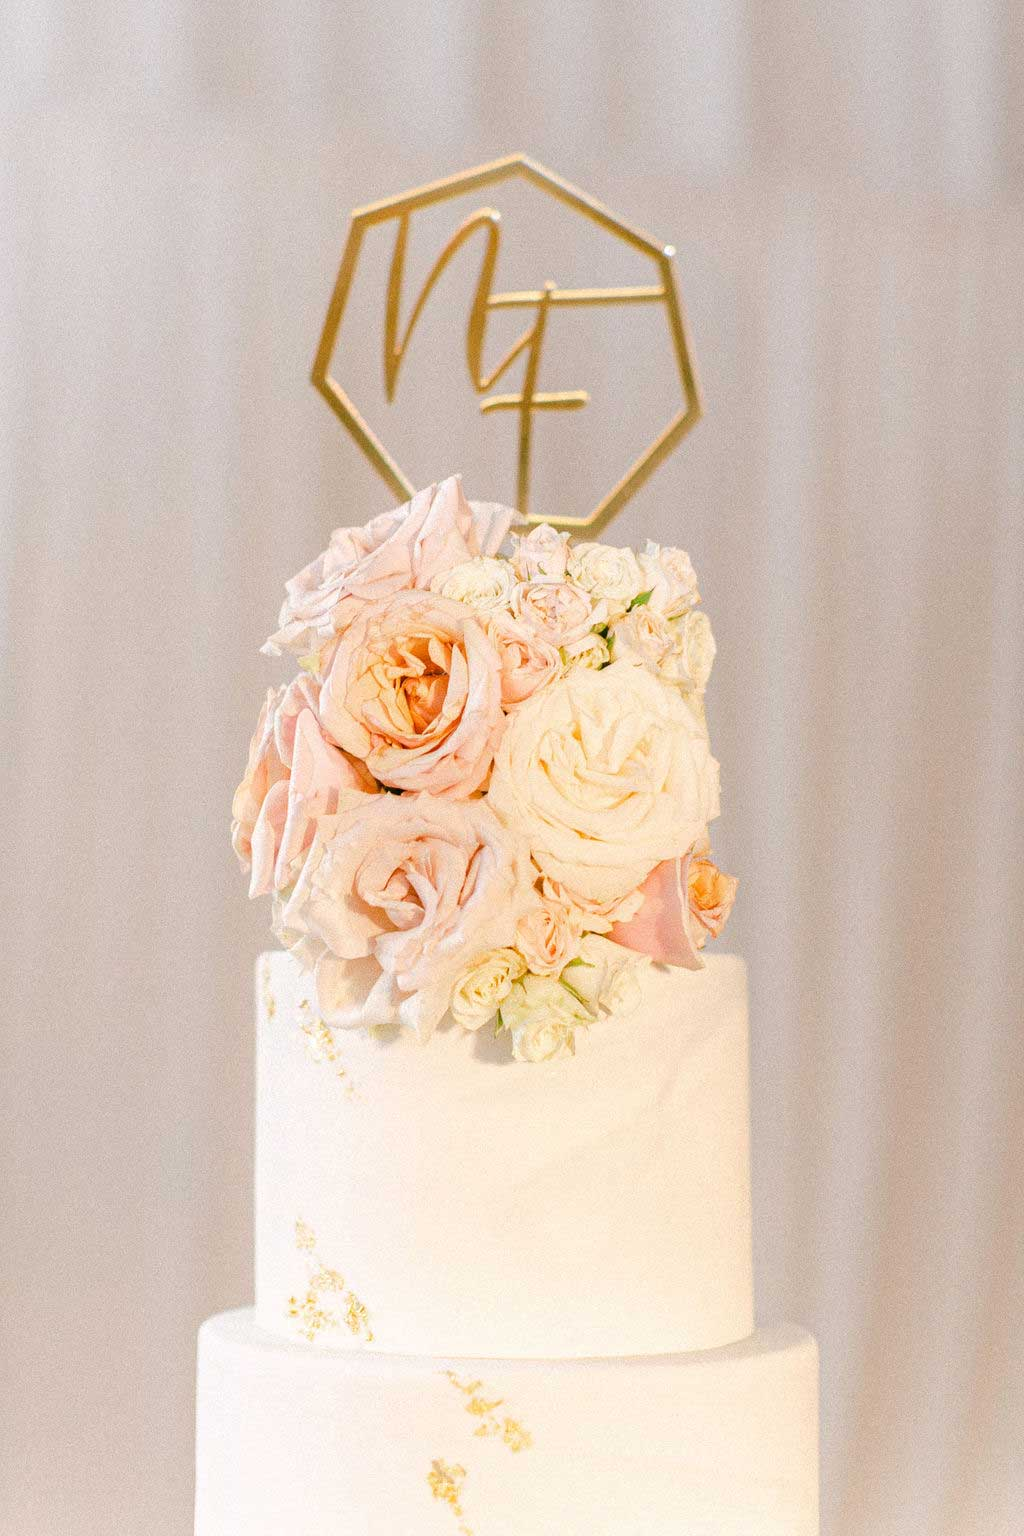 Closeup of wedding cake with floral cake topper and gold initials.